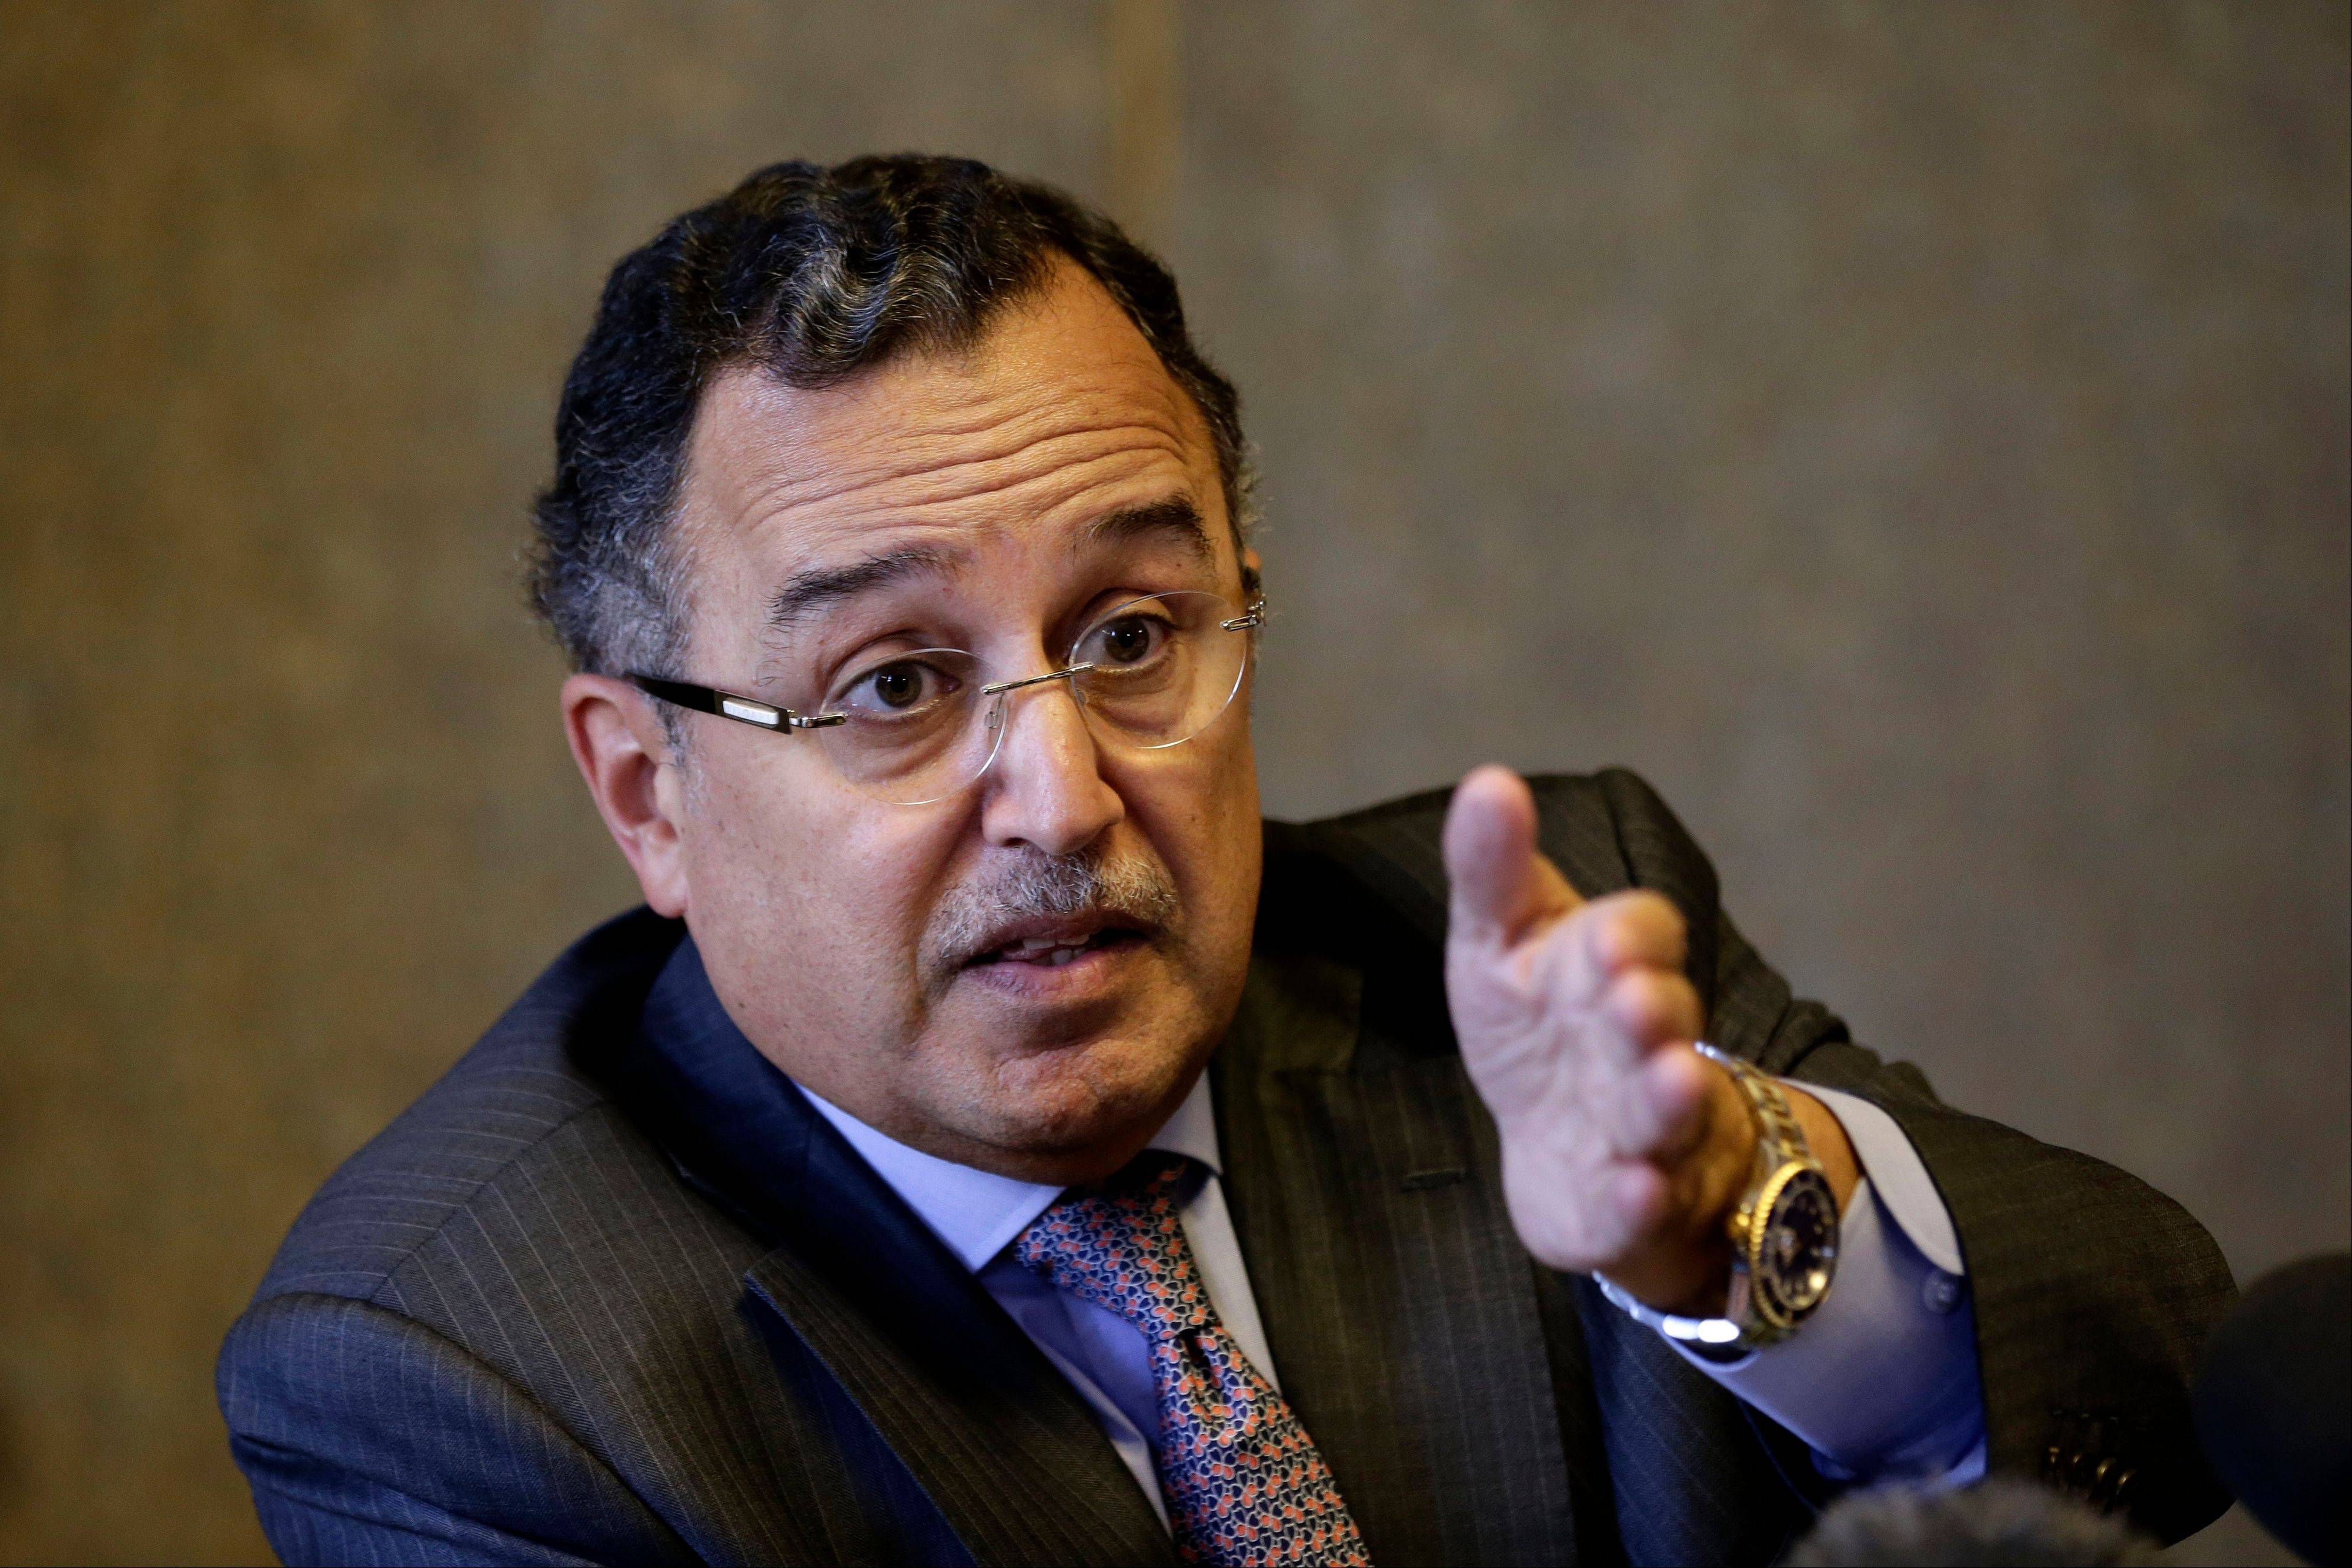 Egypt's Foreign Minister Nabil Fahmy said on Thursday that Russia was too important to be a substitute for the United States as Cairo's foreign ally and backer.